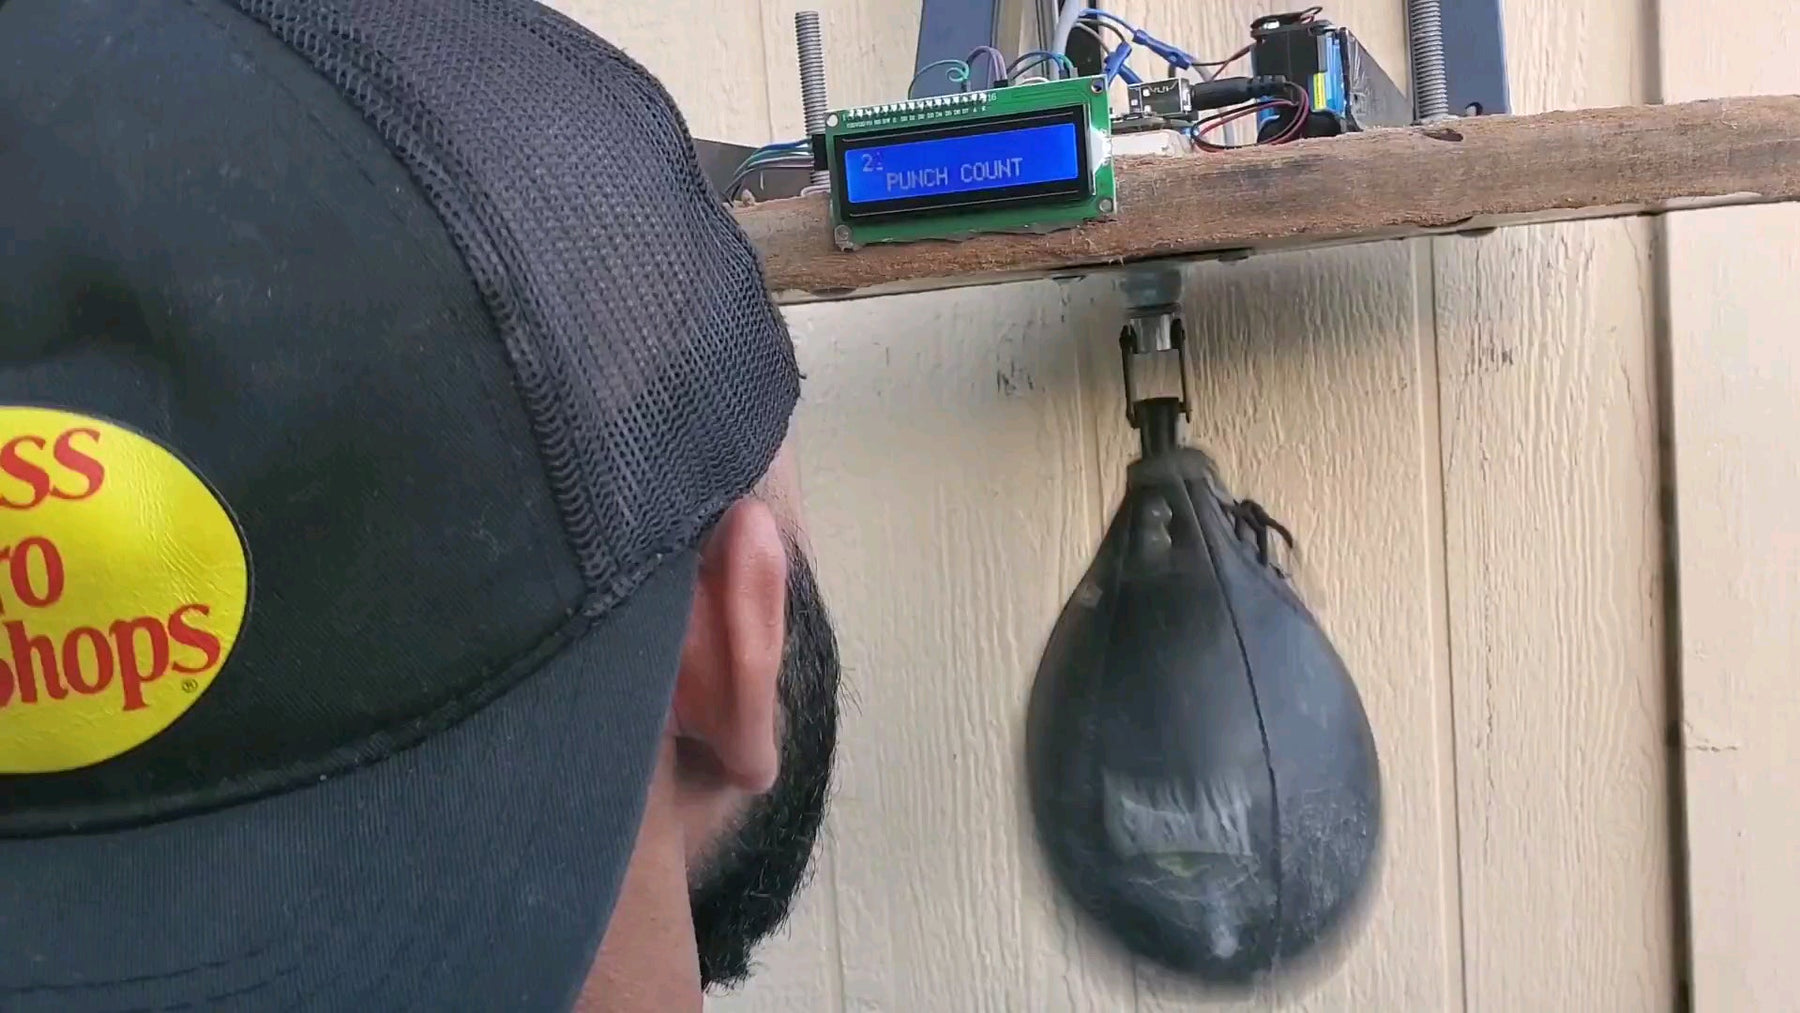 This Arduino-based speed bag counts your punches